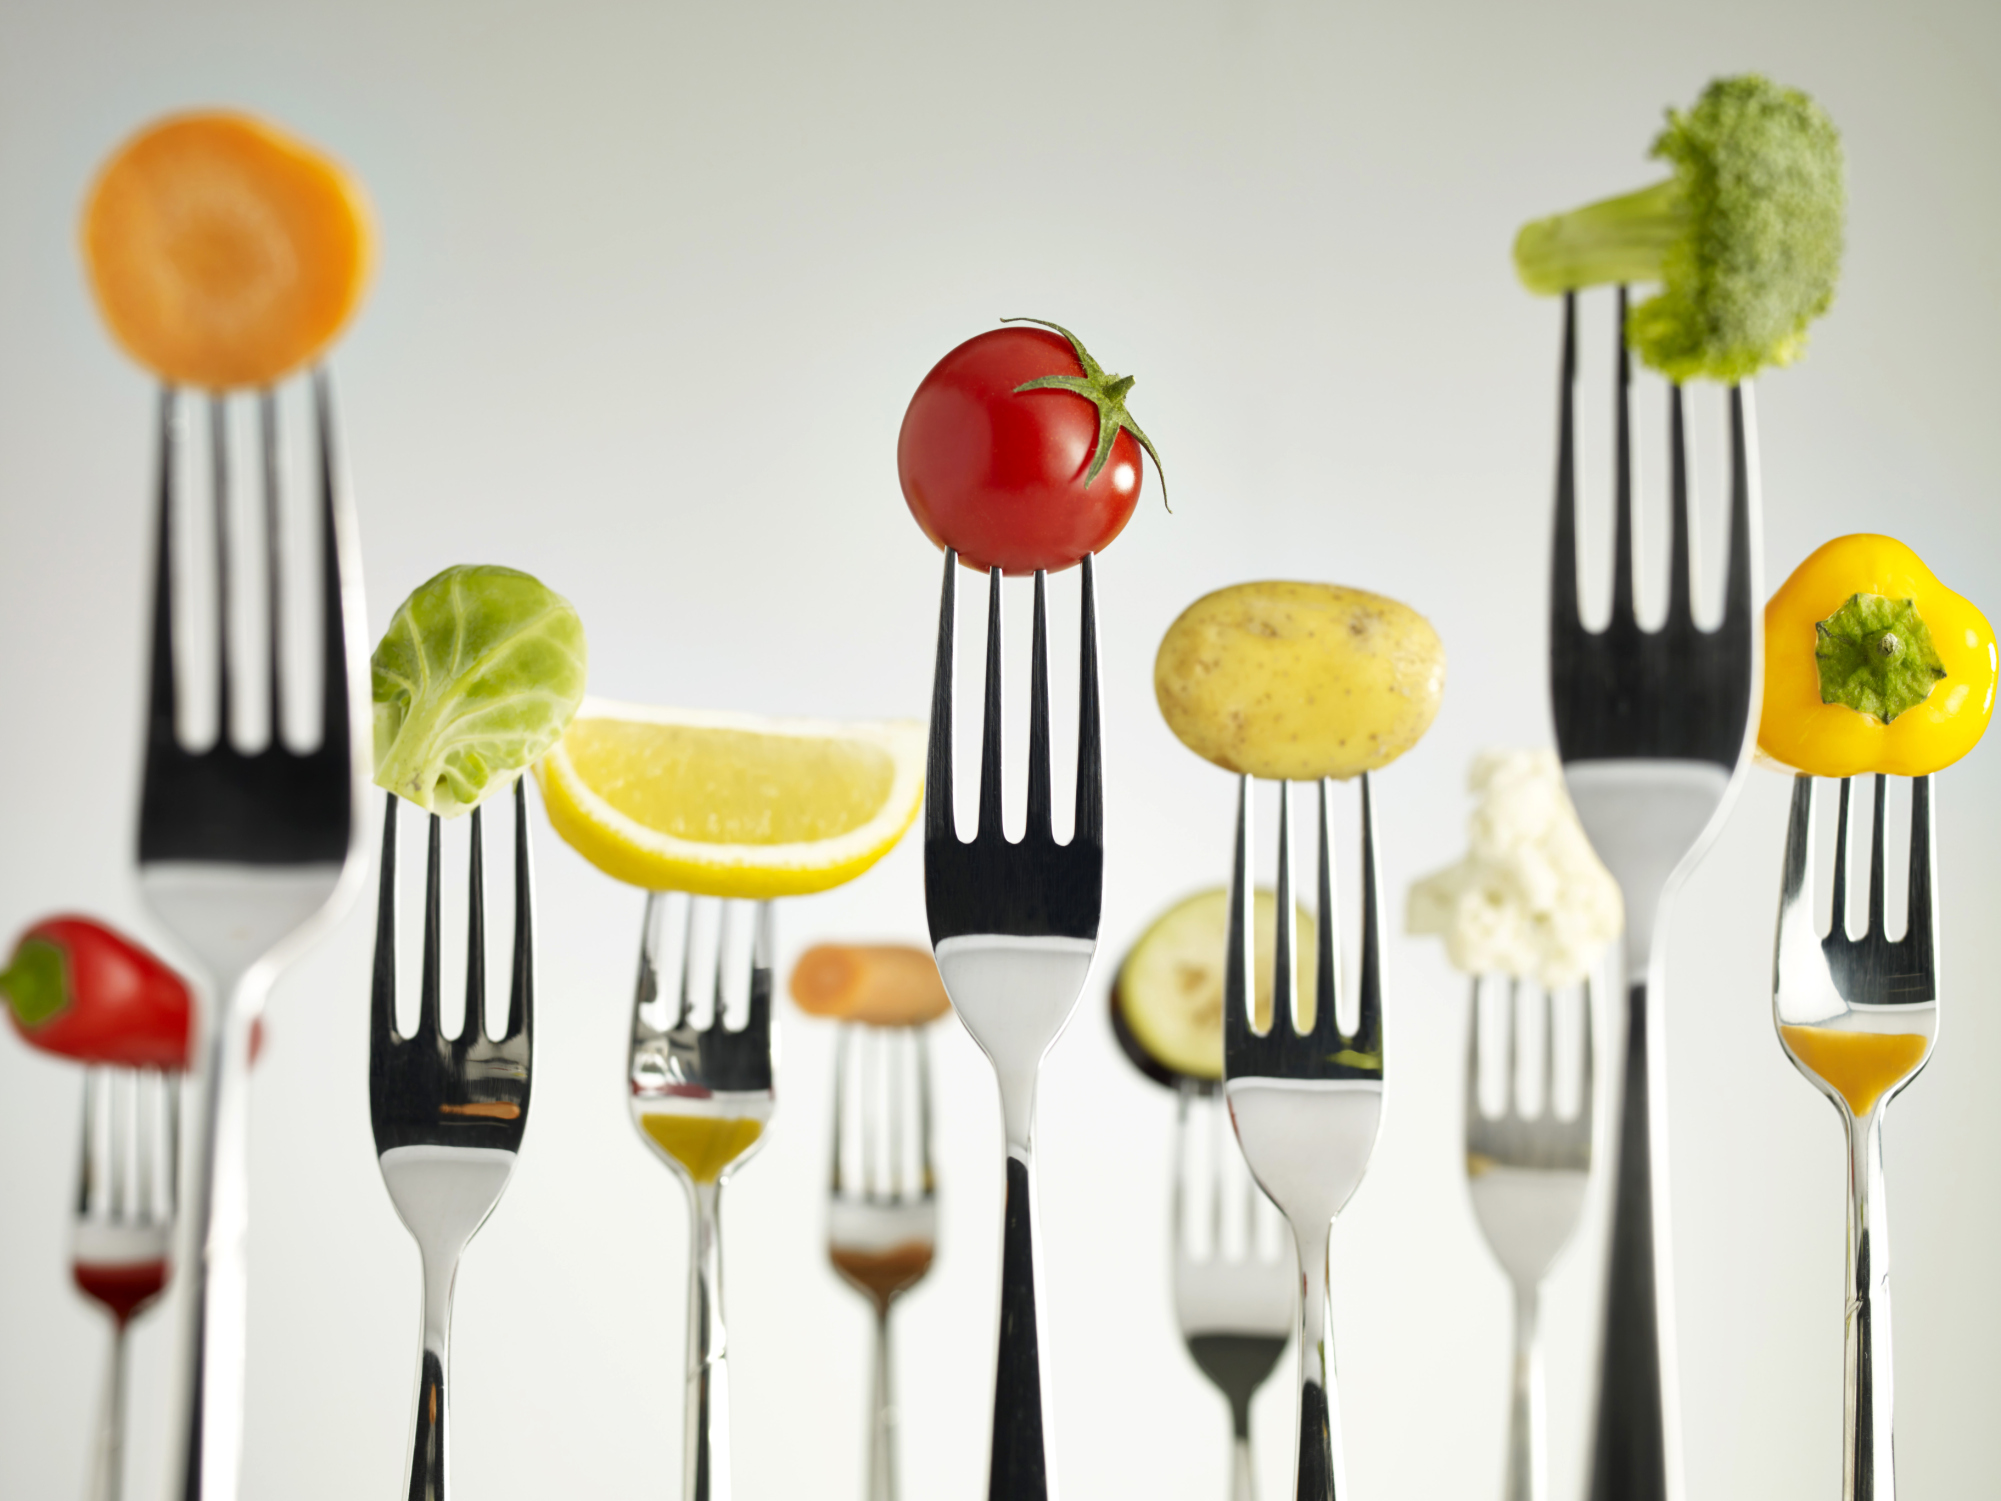 8 Painless Tips for National Nutrition Month